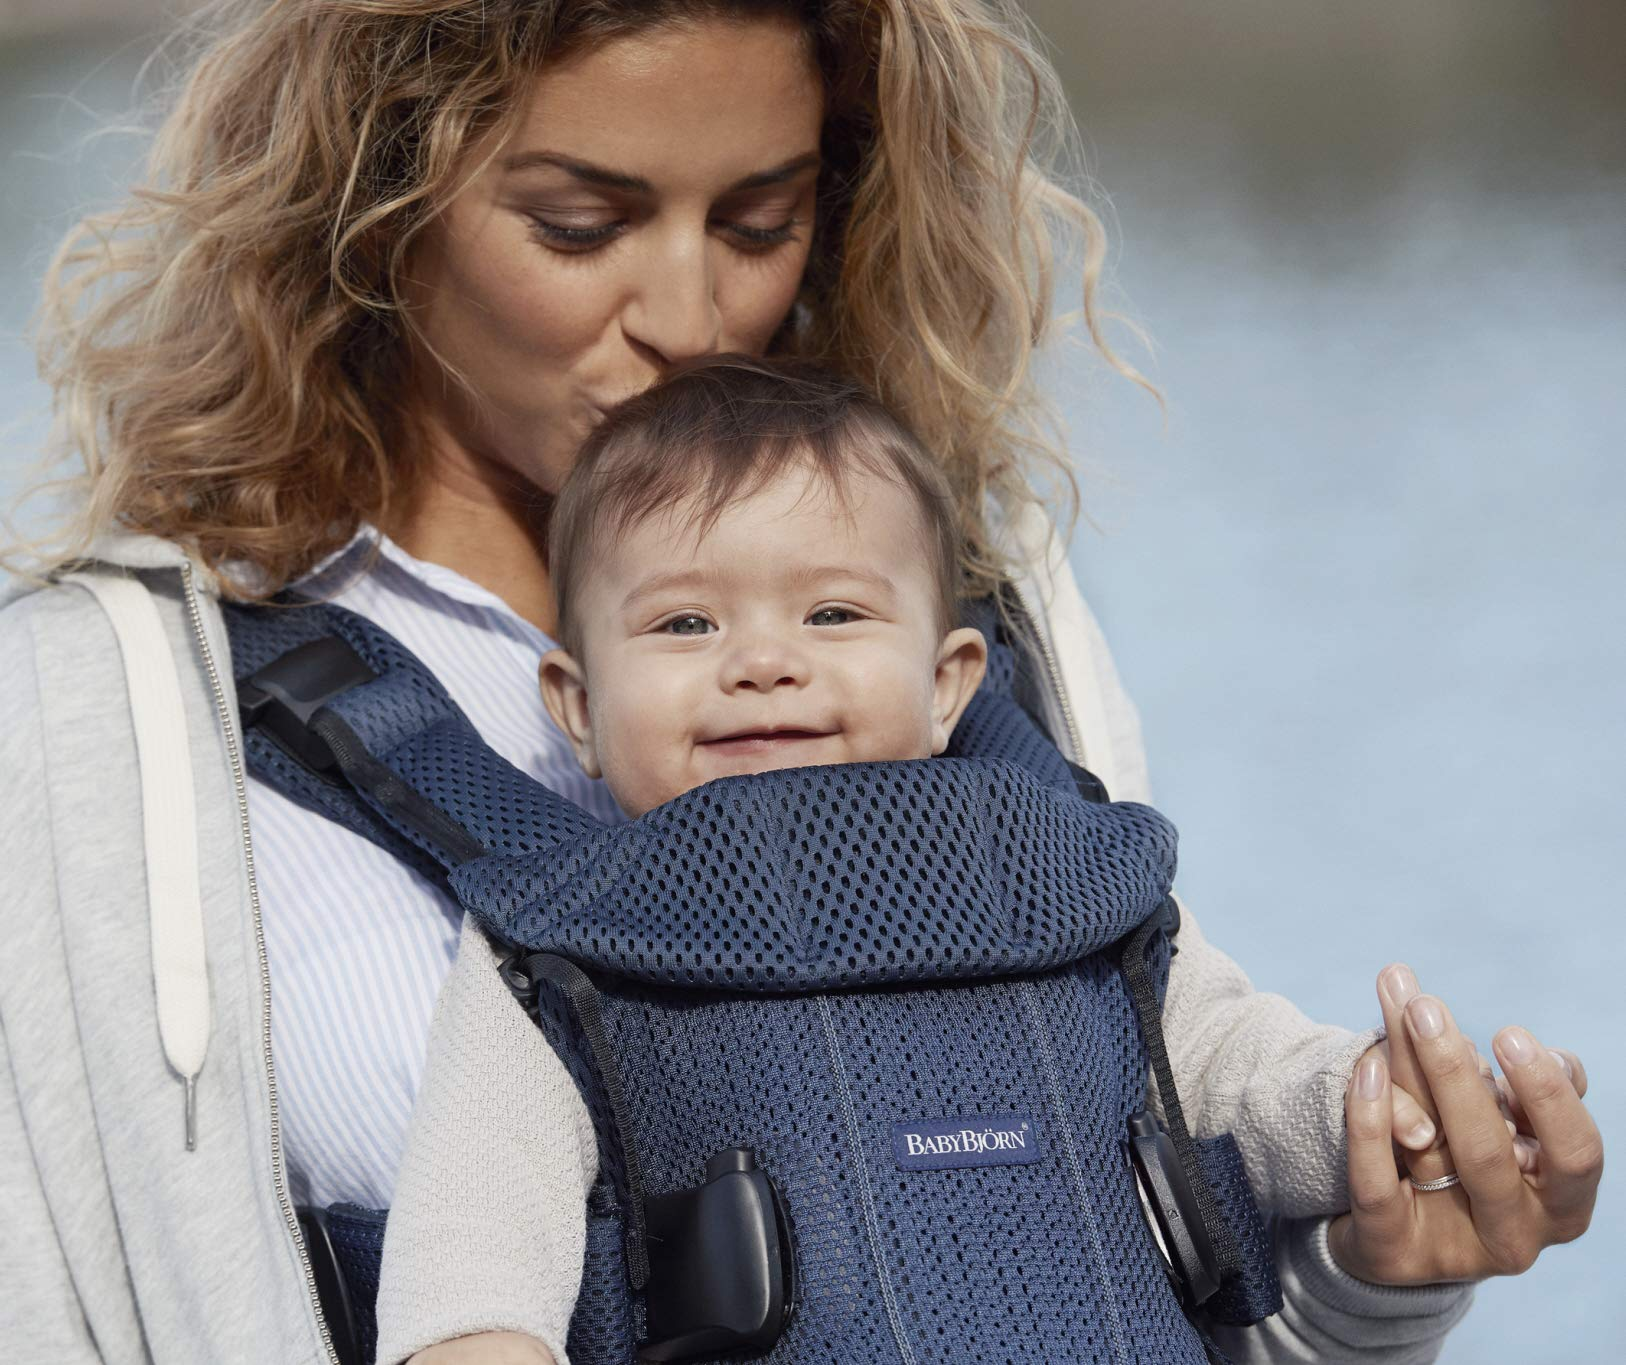 BABYBJÖRN Baby Carrier One Air, 3D Mesh, Navy Blue, 2018 Edition Baby Bjorn The latest version (2018) with soft and breathable mesh that dries quickly Ergonomic baby carrier with excellent support 4 carrying positions: facing in (two height positions), facing out or on your back 5